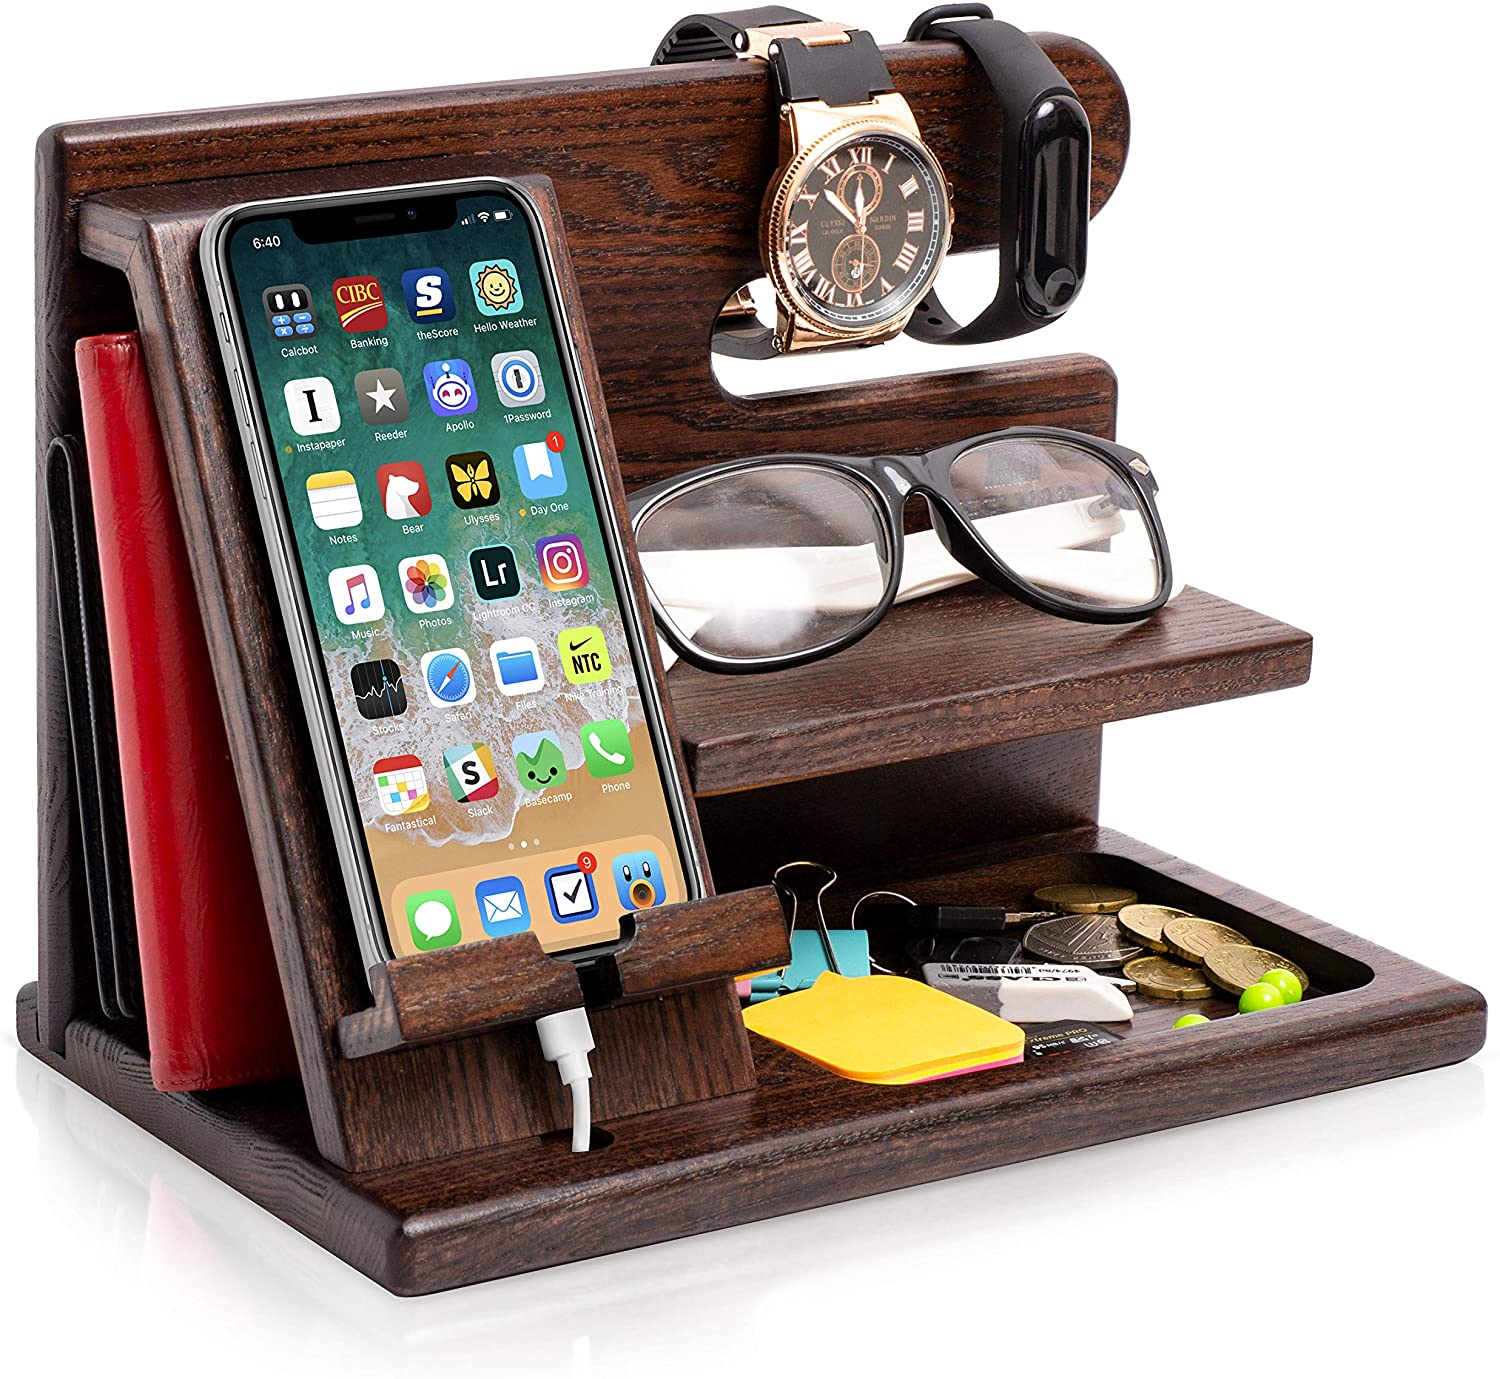 Wood Phone Docking Station - WorkwearToronto.com - Gift Ideas For Men - Christmas Gift ideas for him - Amazon